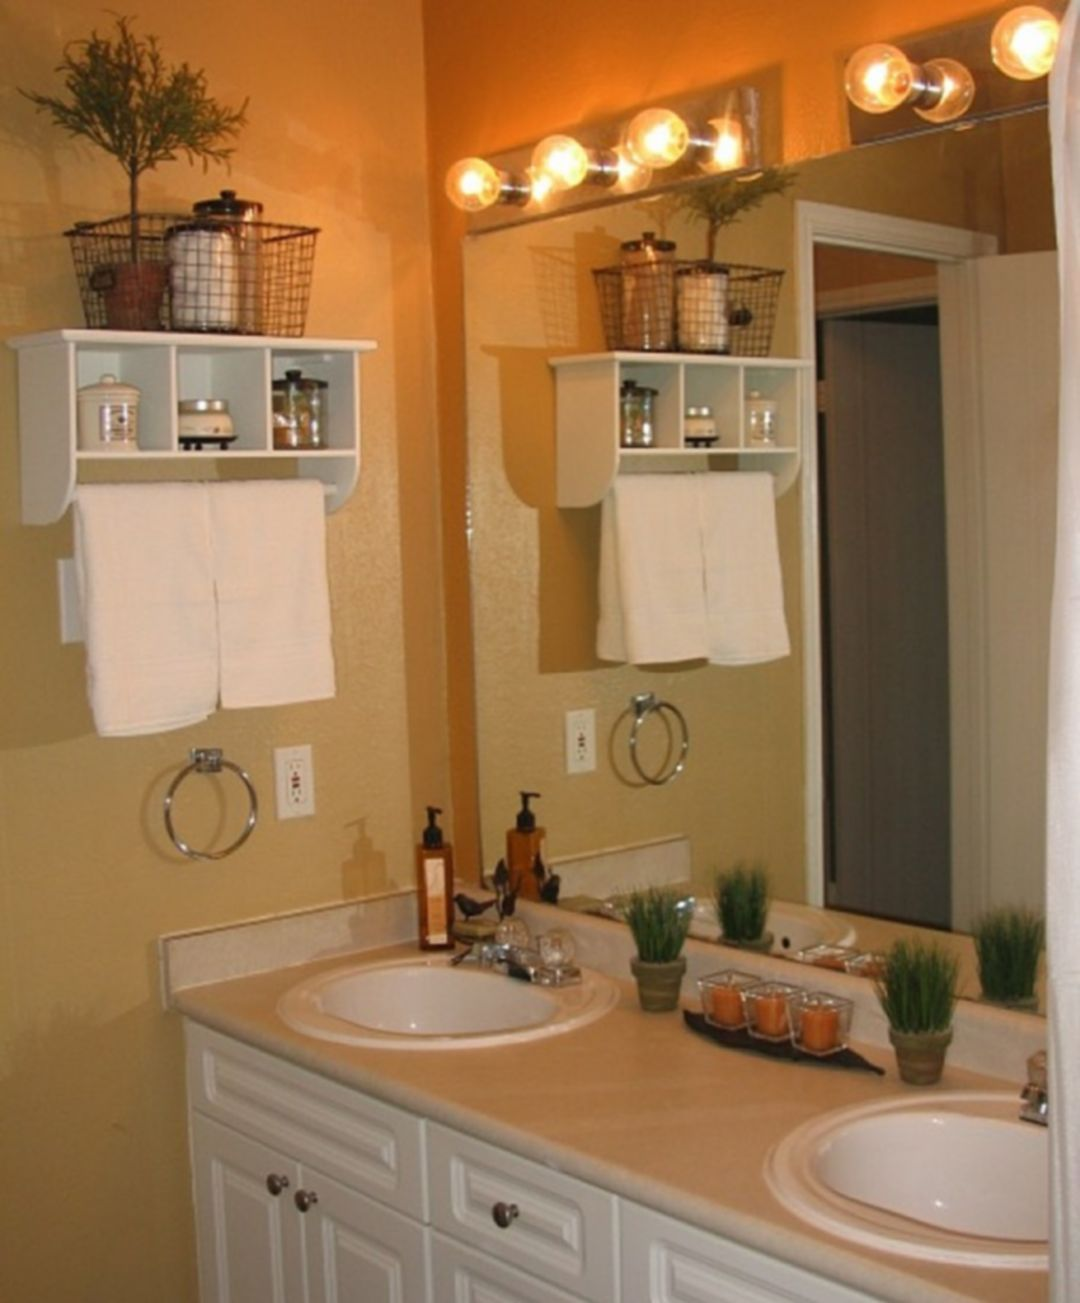 25 Simple And Elegant Bathroom Decorating Ideas For Your